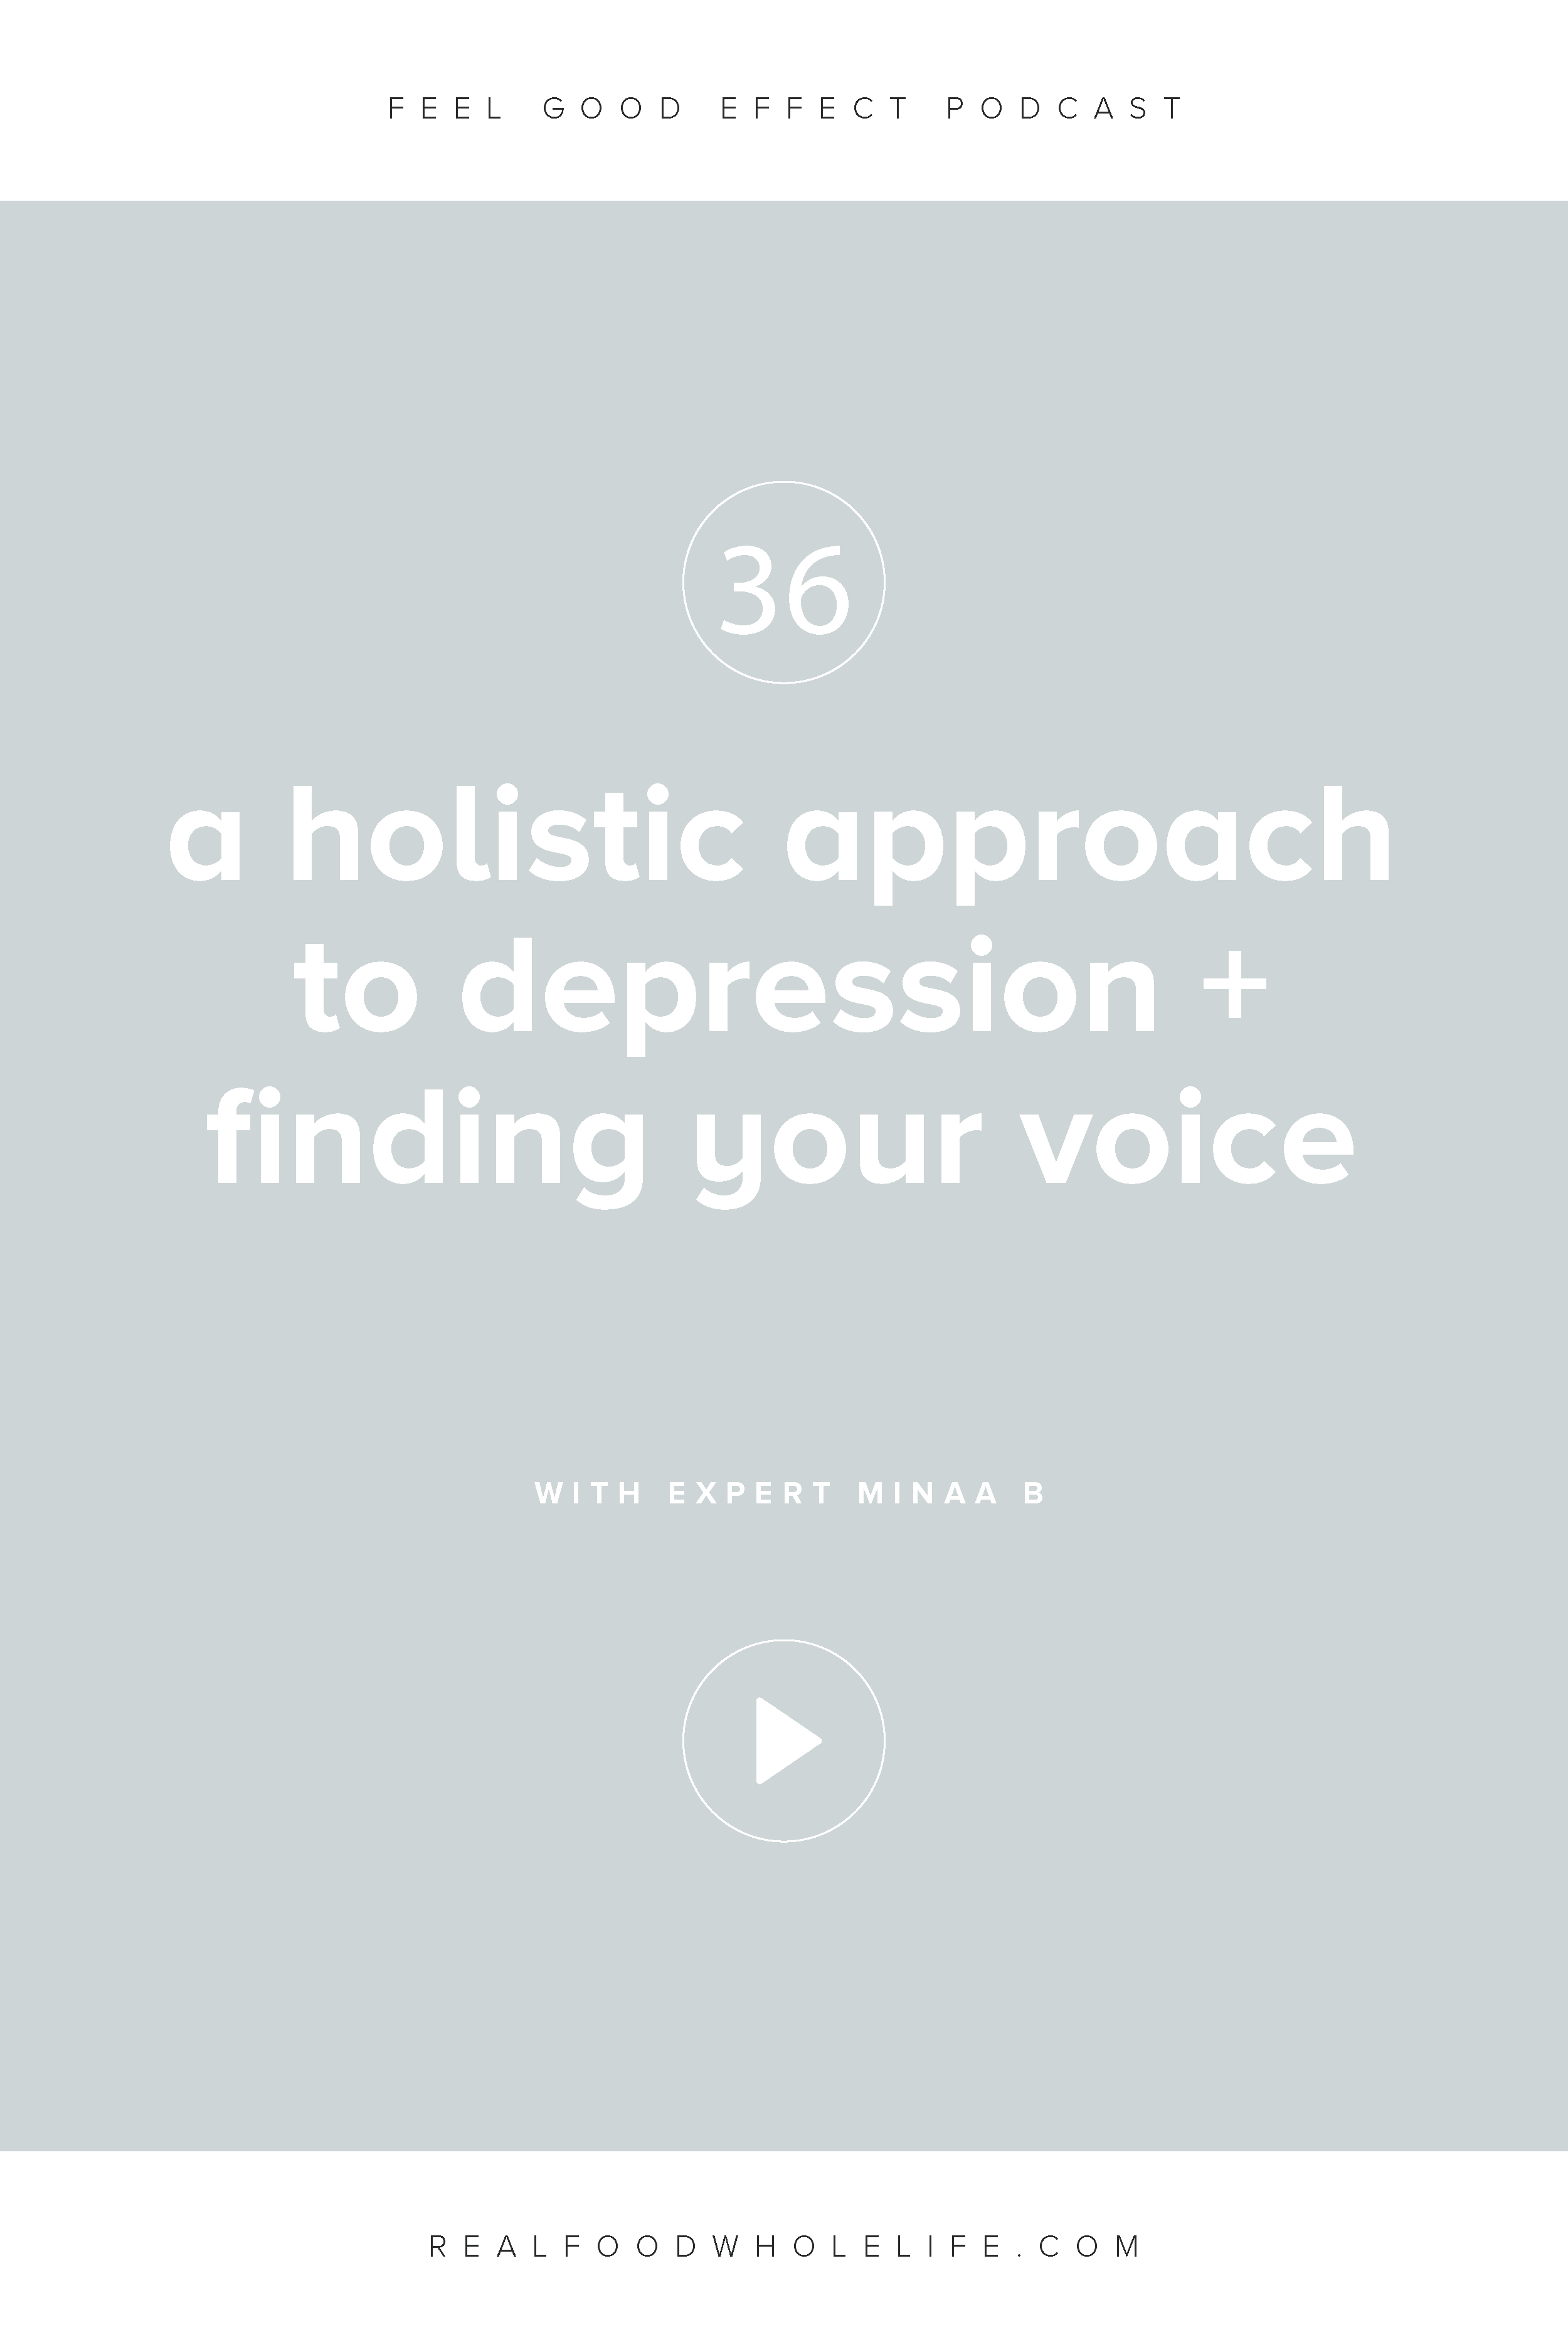 A Holistic Approach to Depression + Finding Your Voice with Minaa B.